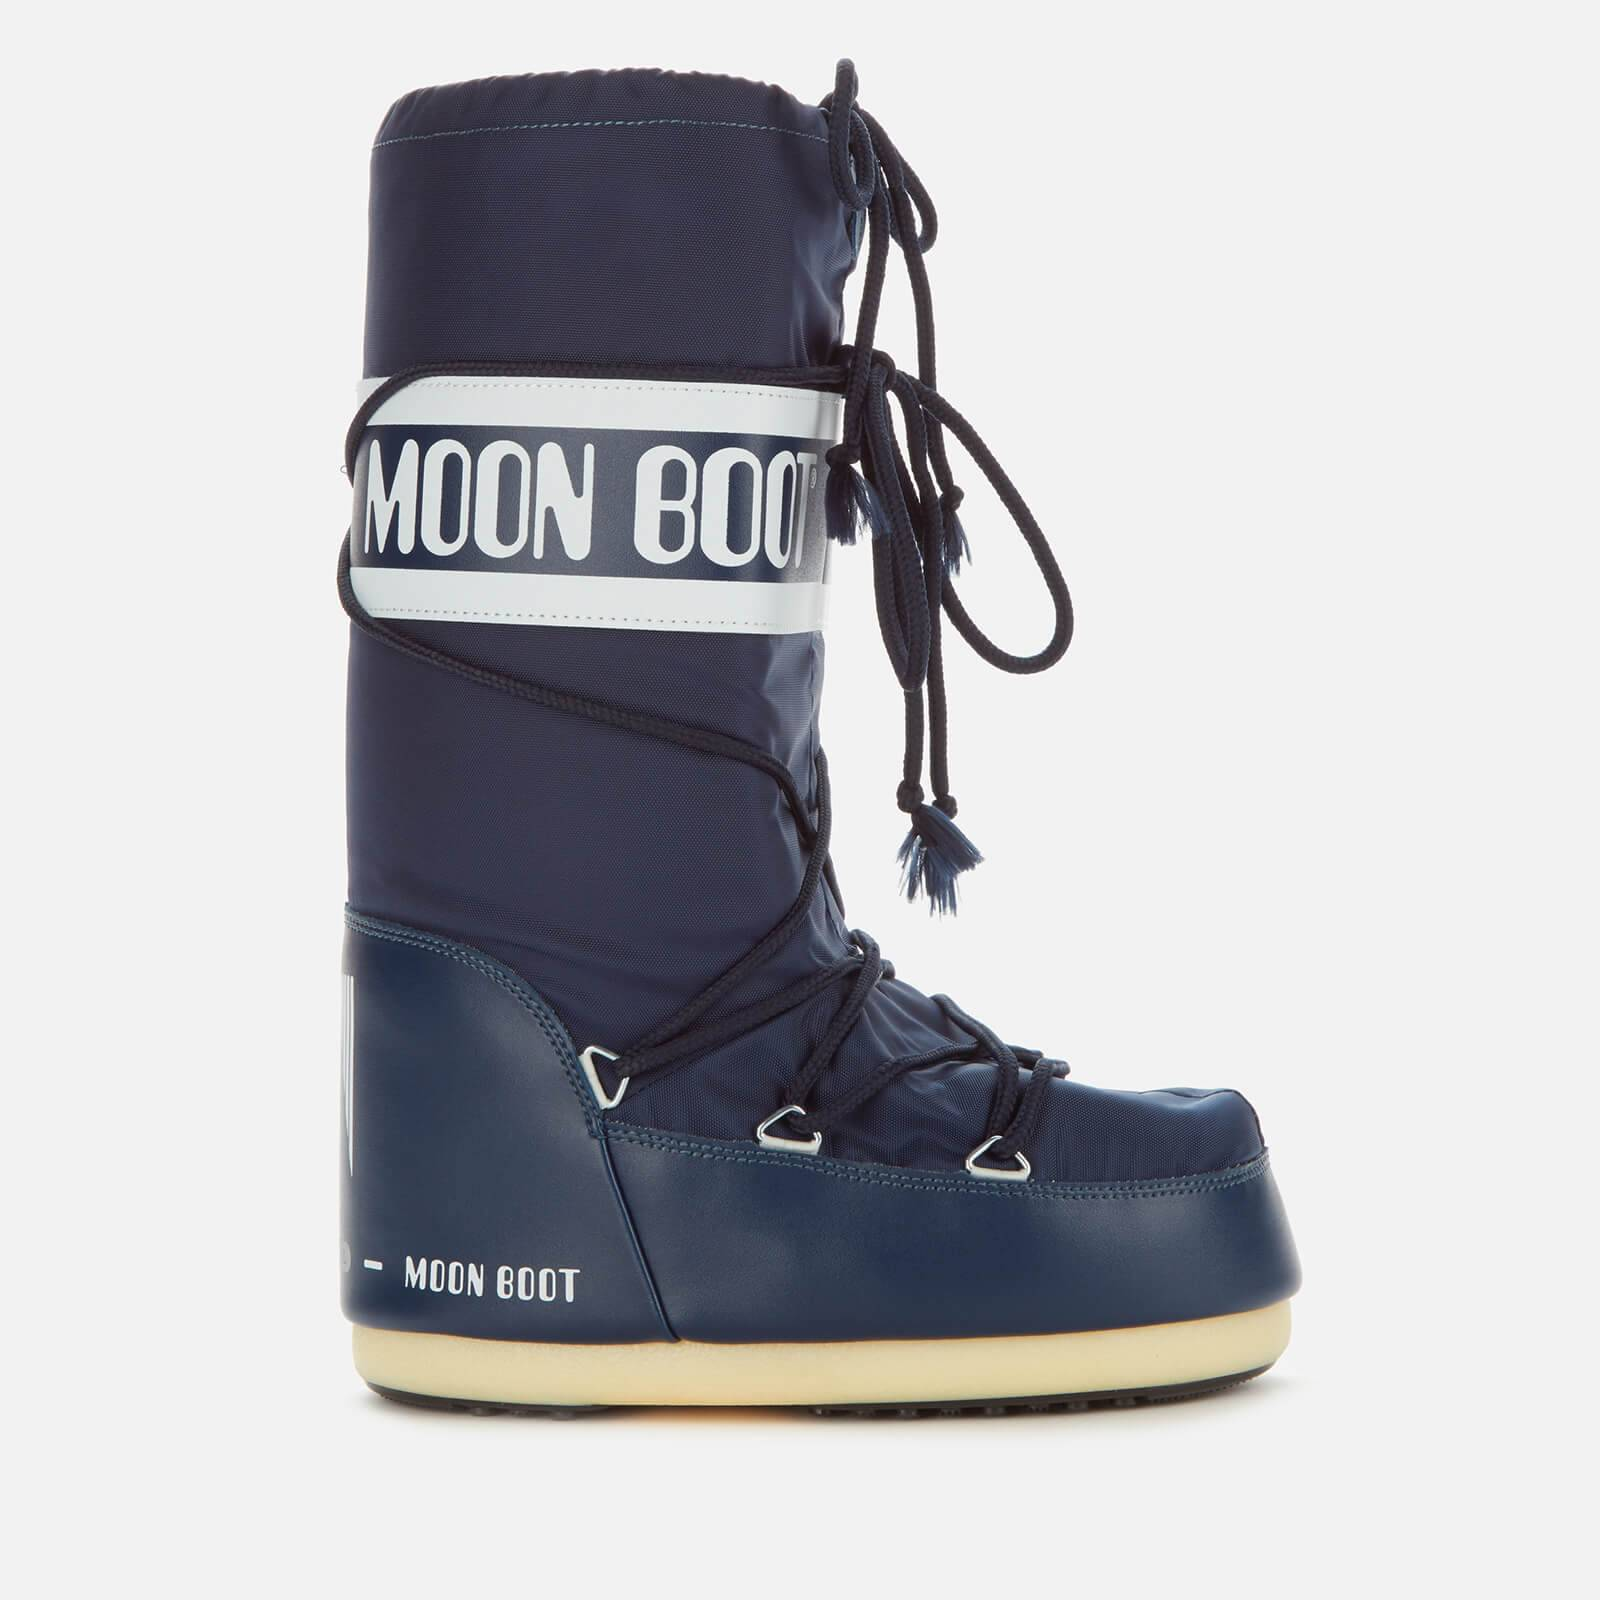 Moon Boot Women's Nylon Boots - Blue - EU 39-41 - Blue